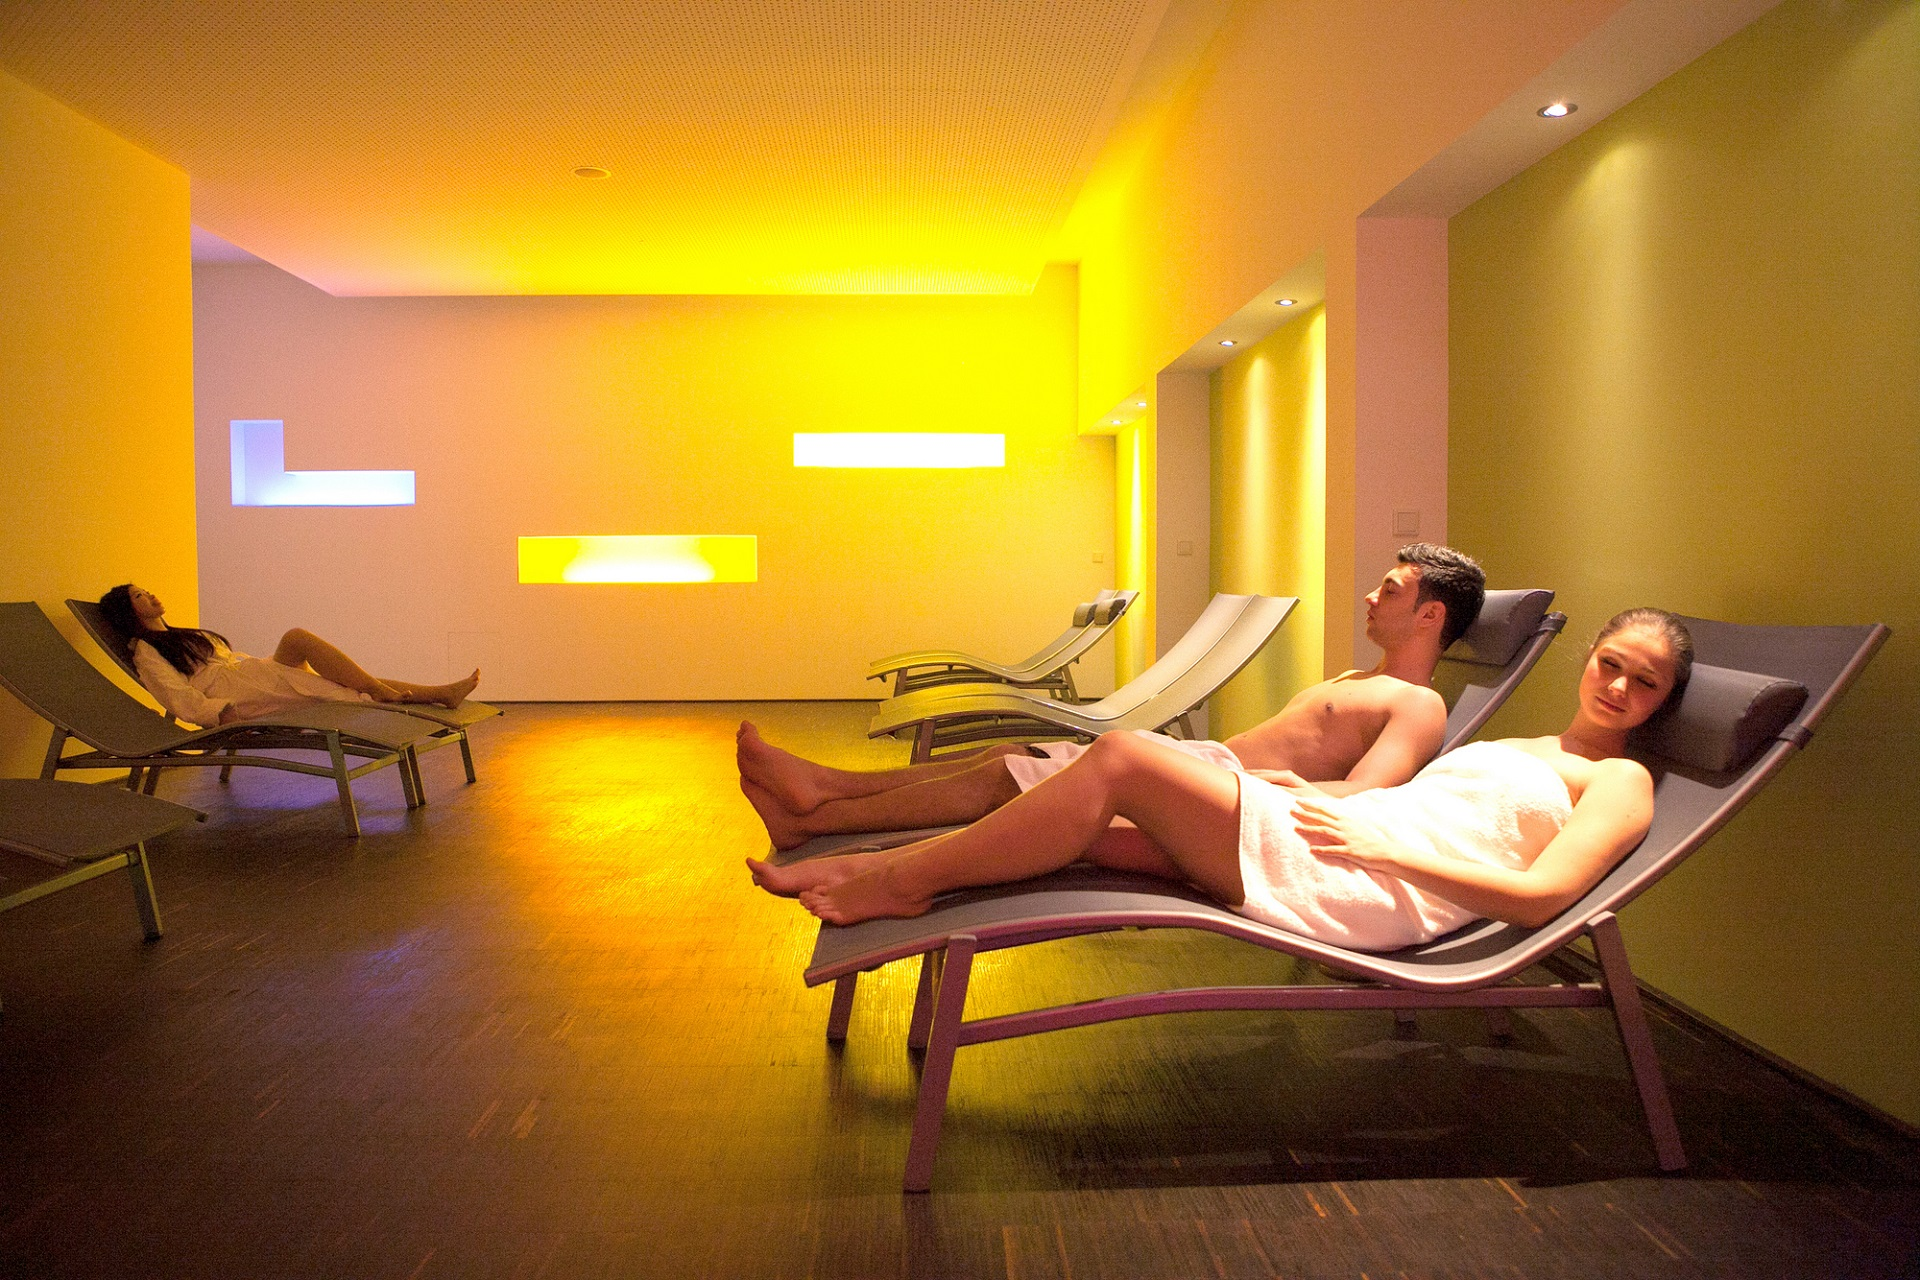 3 Tage Wellness Im Hotel An Der Therme Bad Orb Ab 155